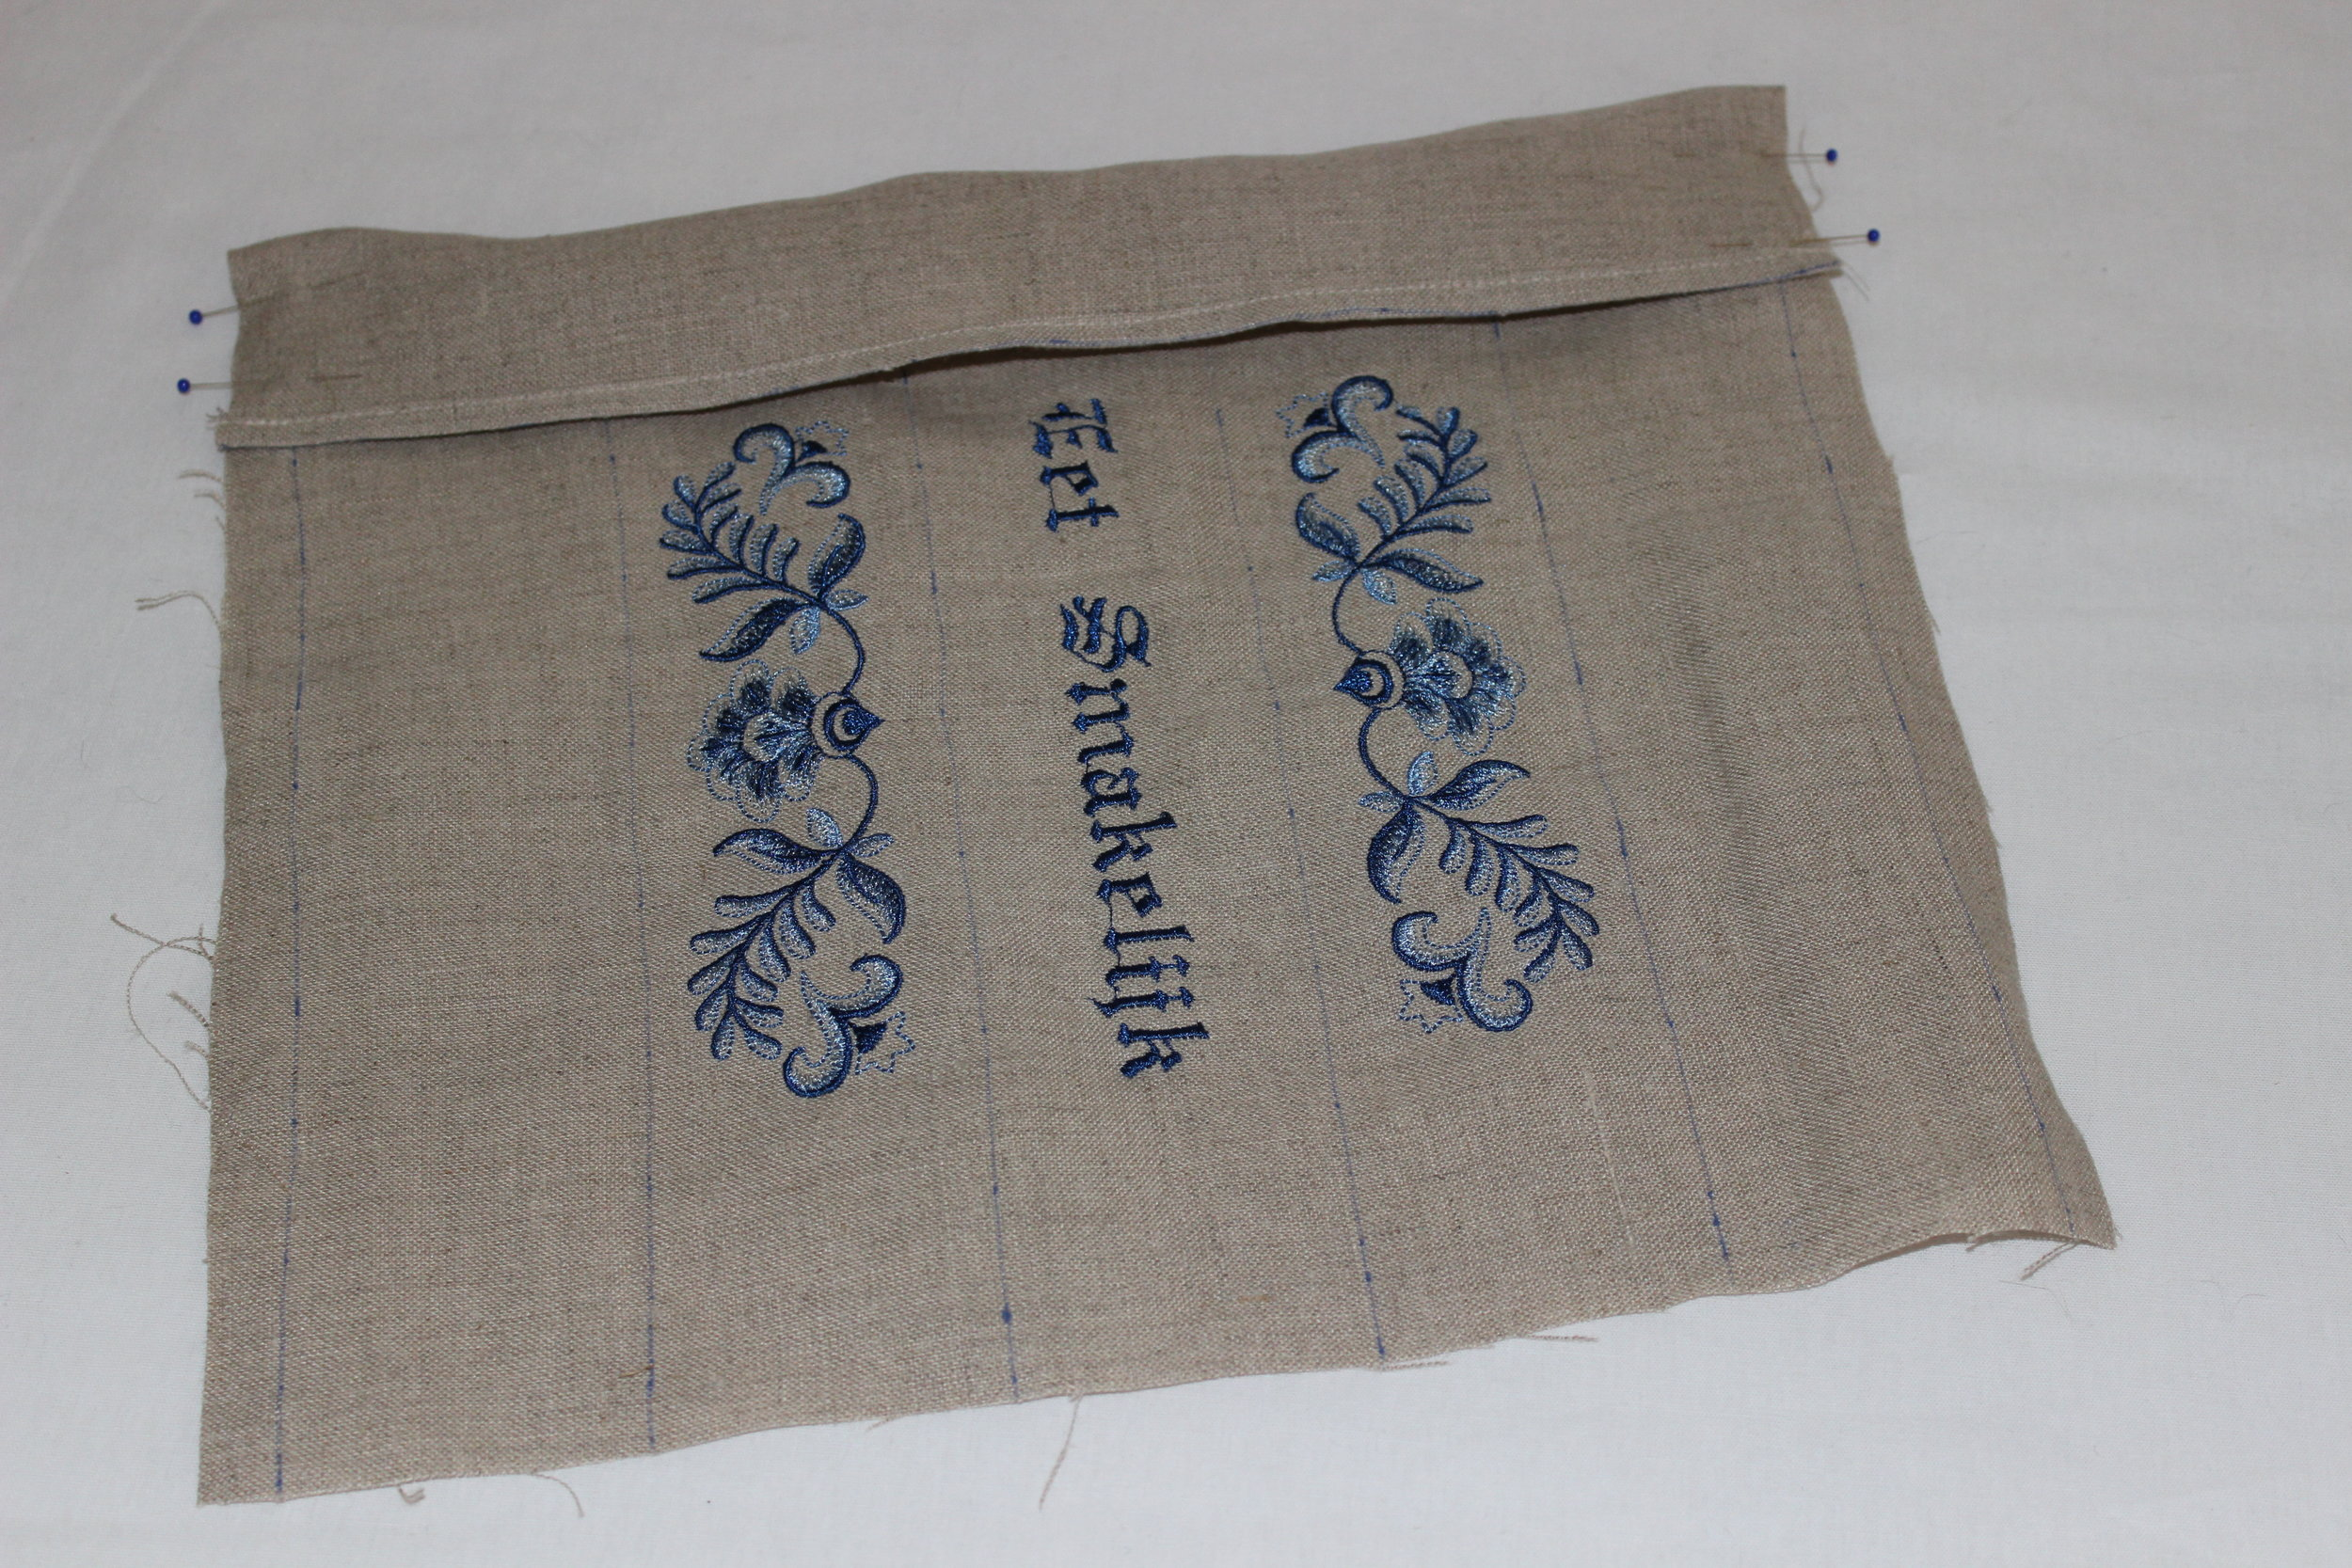 Machine embroidery Design:  Delft Blue Floral Border  ( D7039 )) by  Embroidery Library   Built-in Font on the  Baby Lock Ellisimo Gold